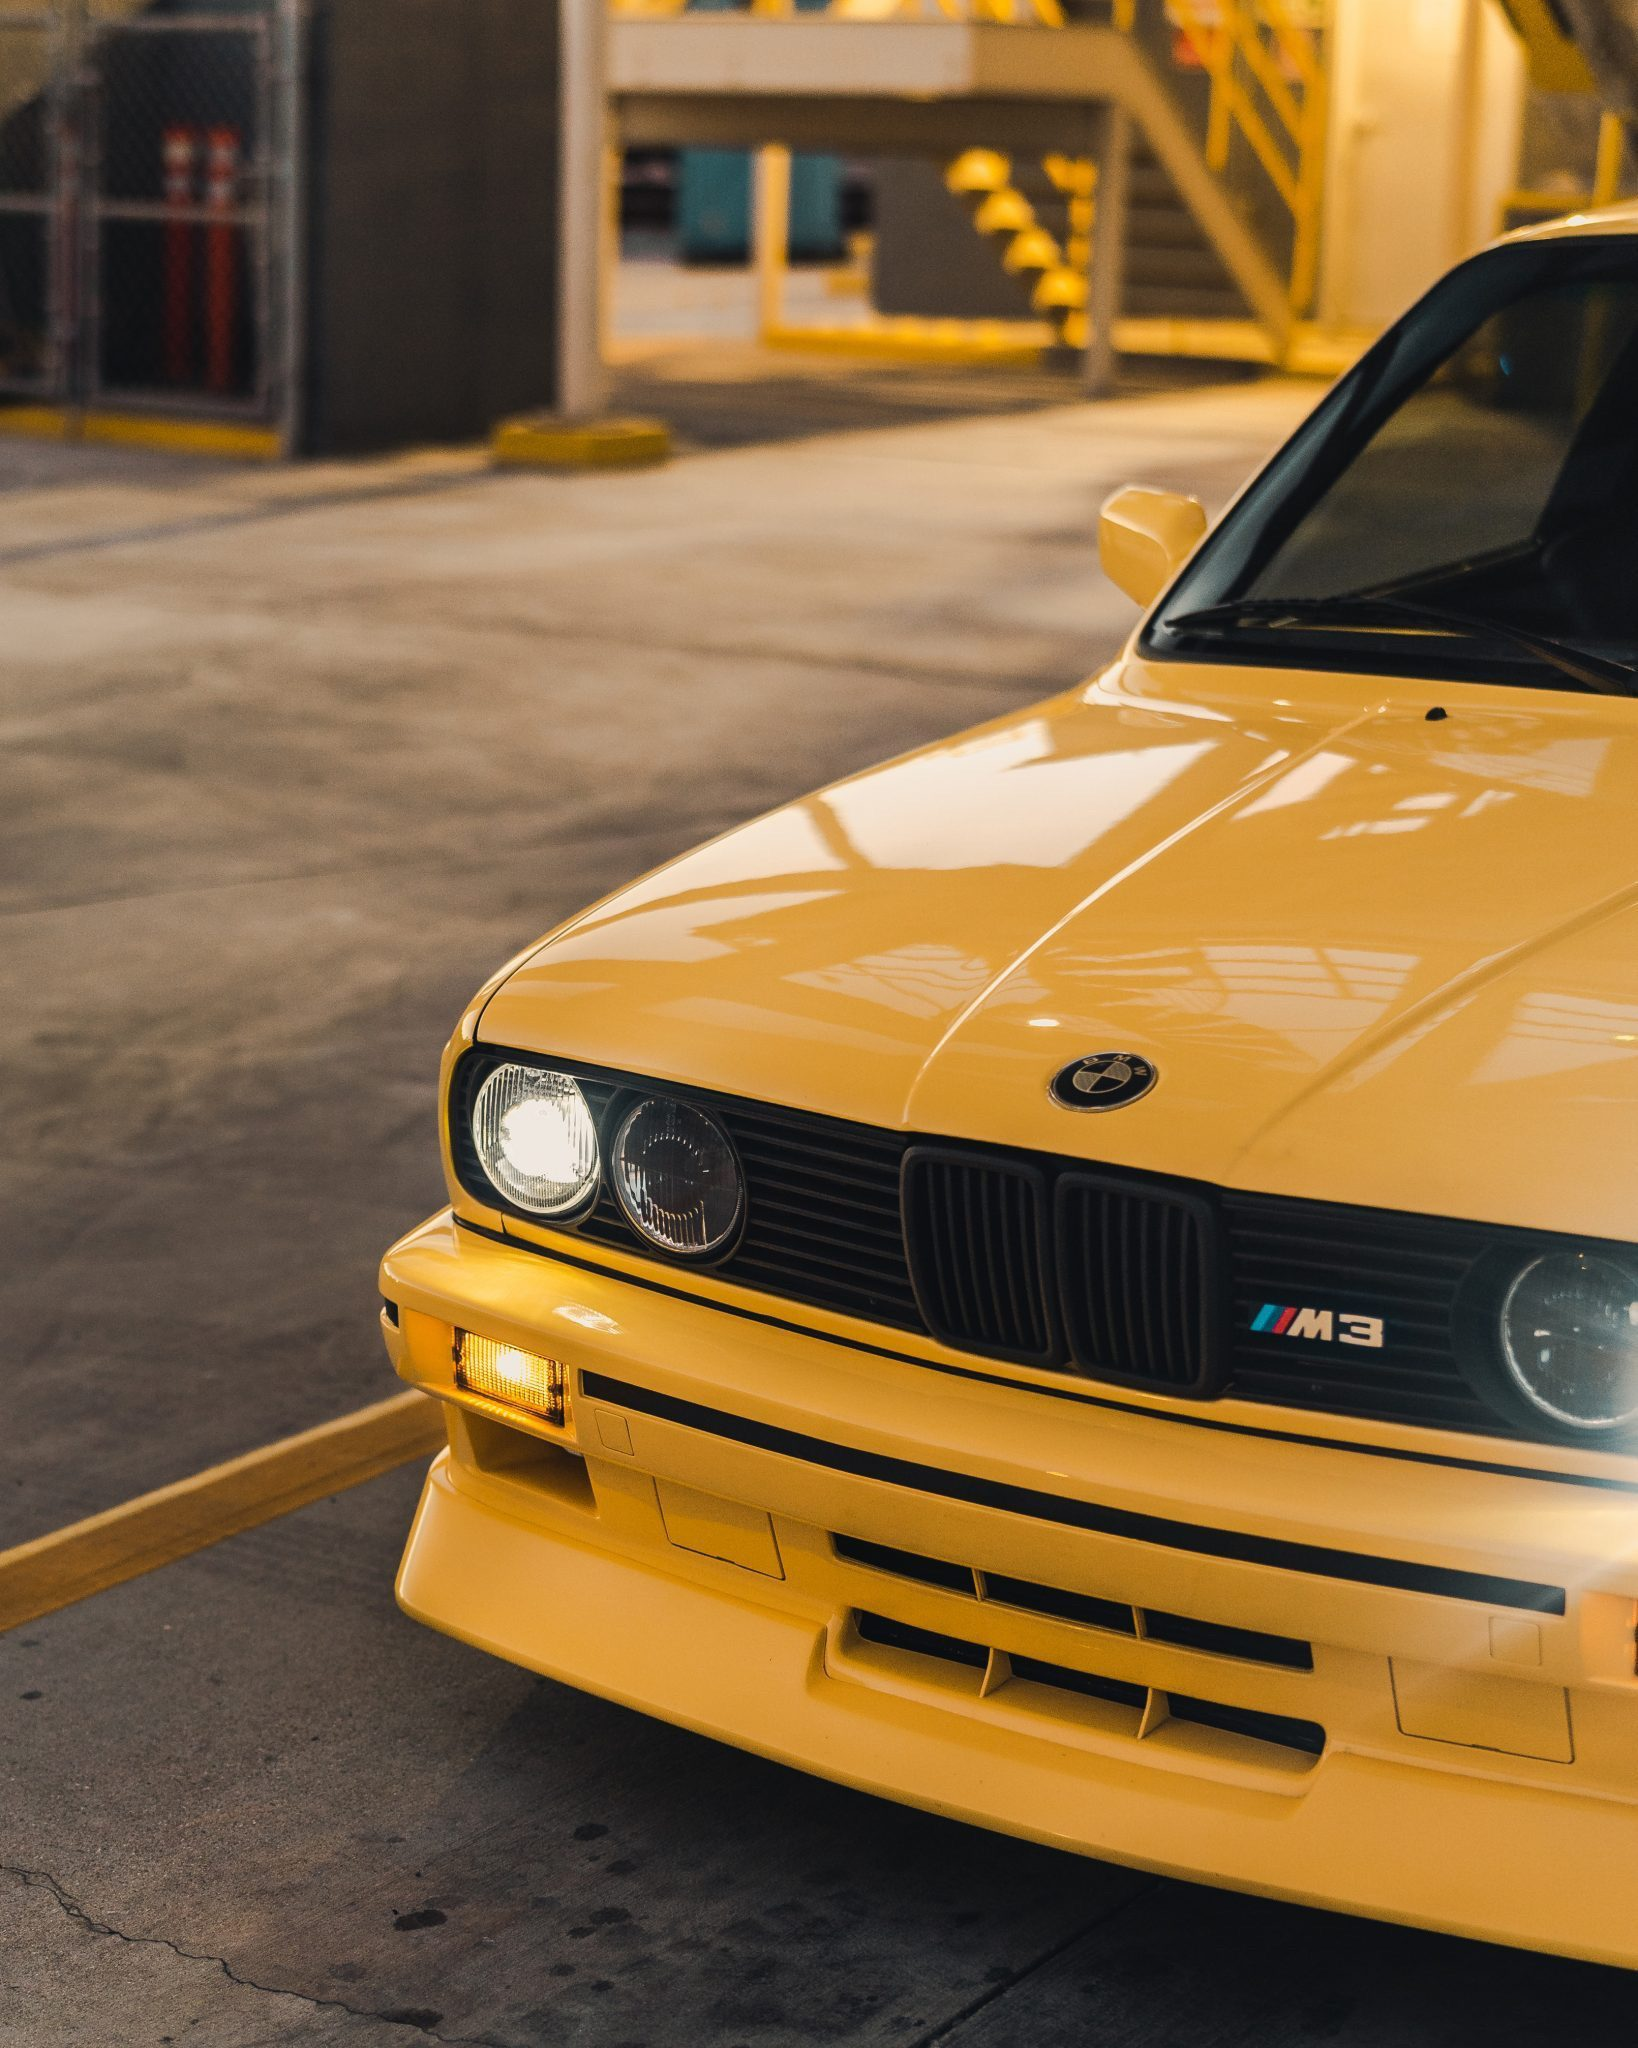 S50-Powered_1989_BMW_M3_0007